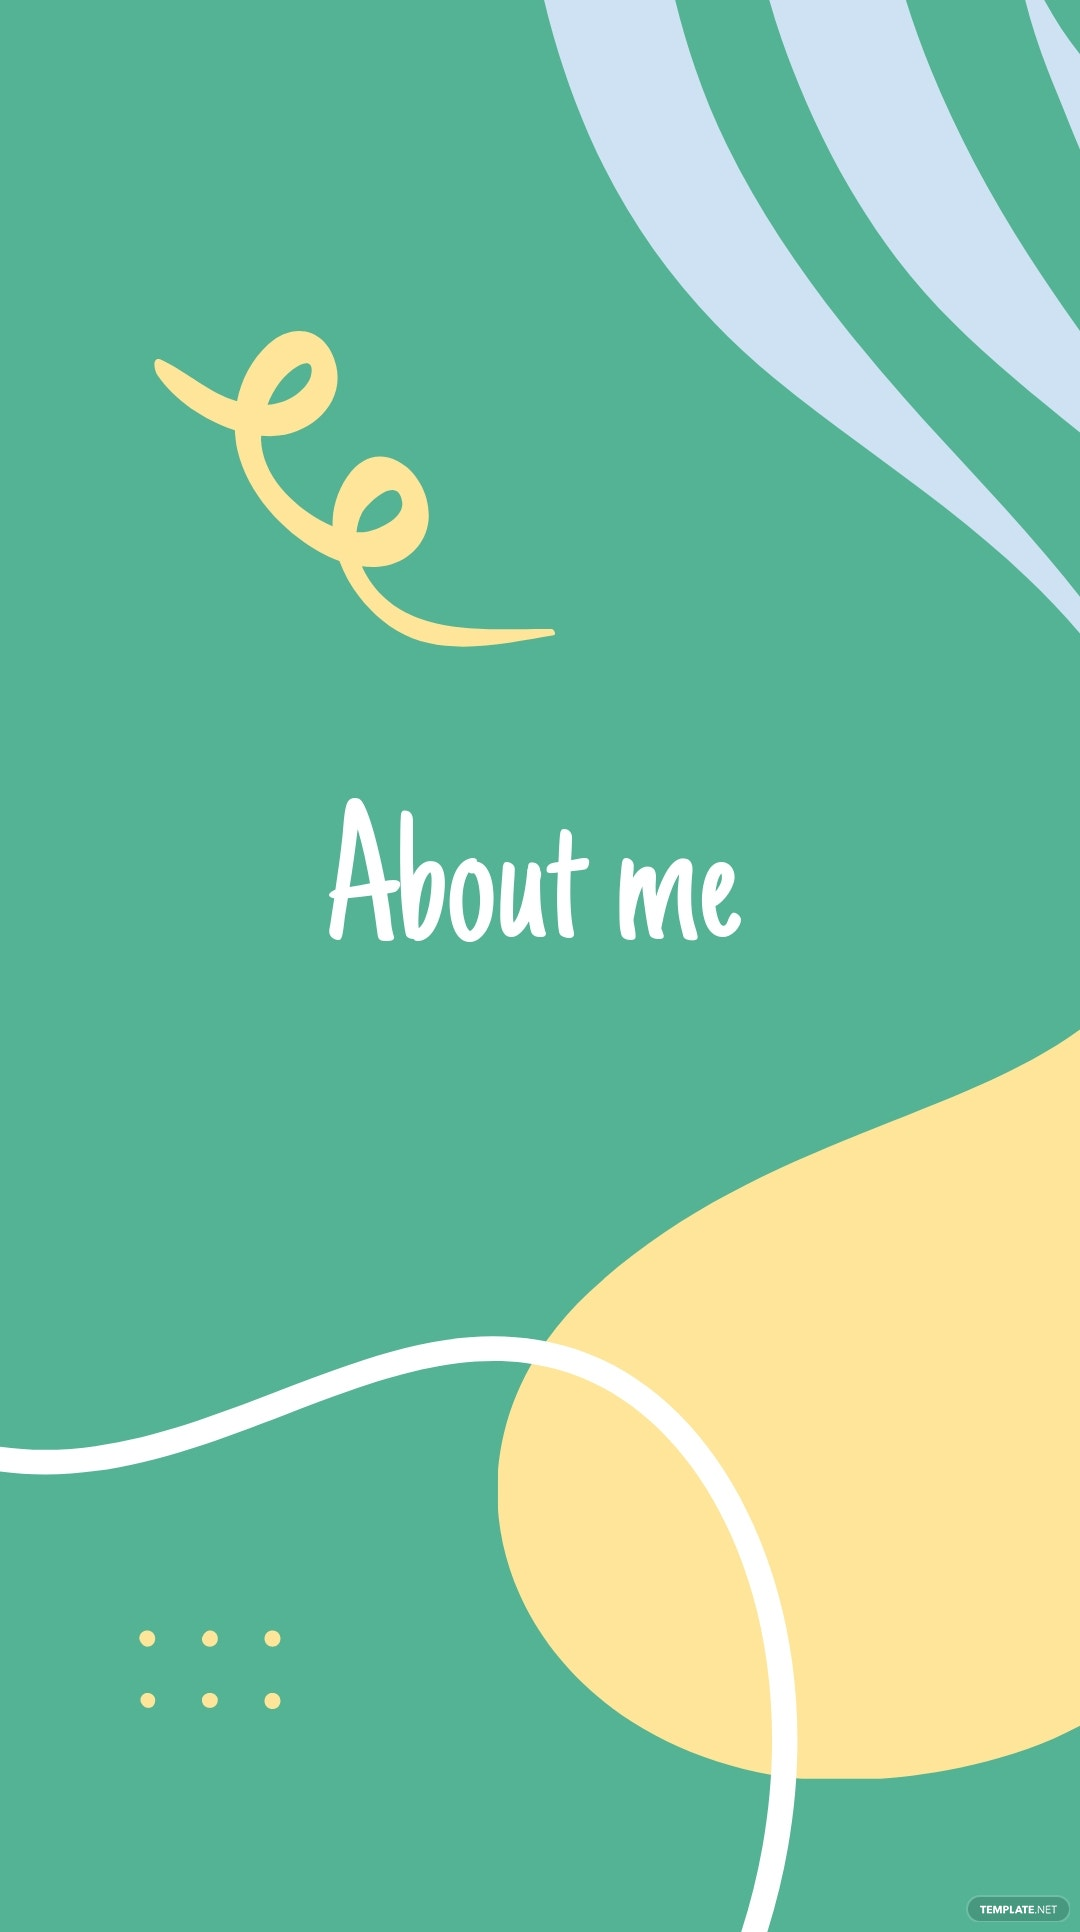 Get To Know Me Introduction Instagram Story Template 2.jpe